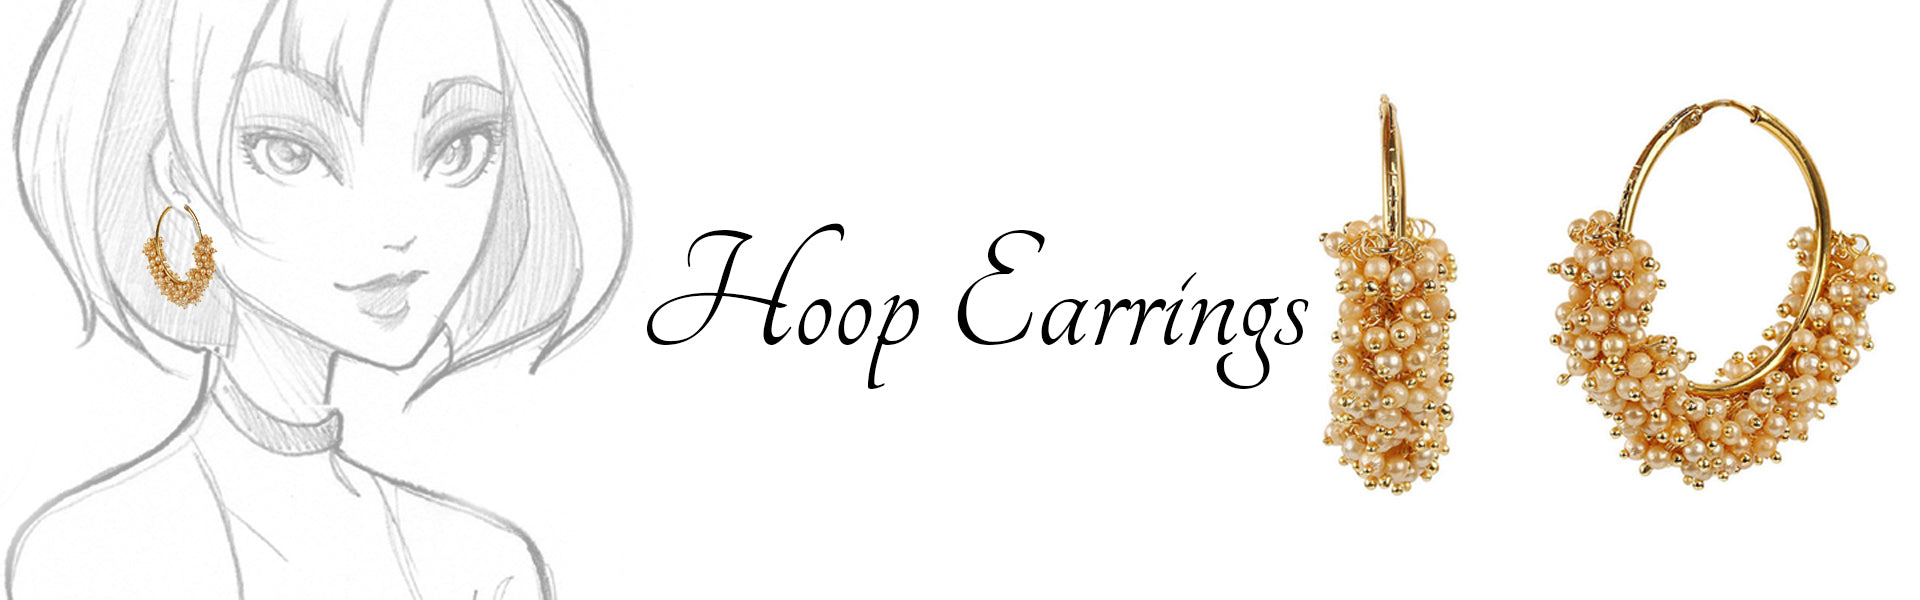 Hoop Earring Collection Shop Online 2016